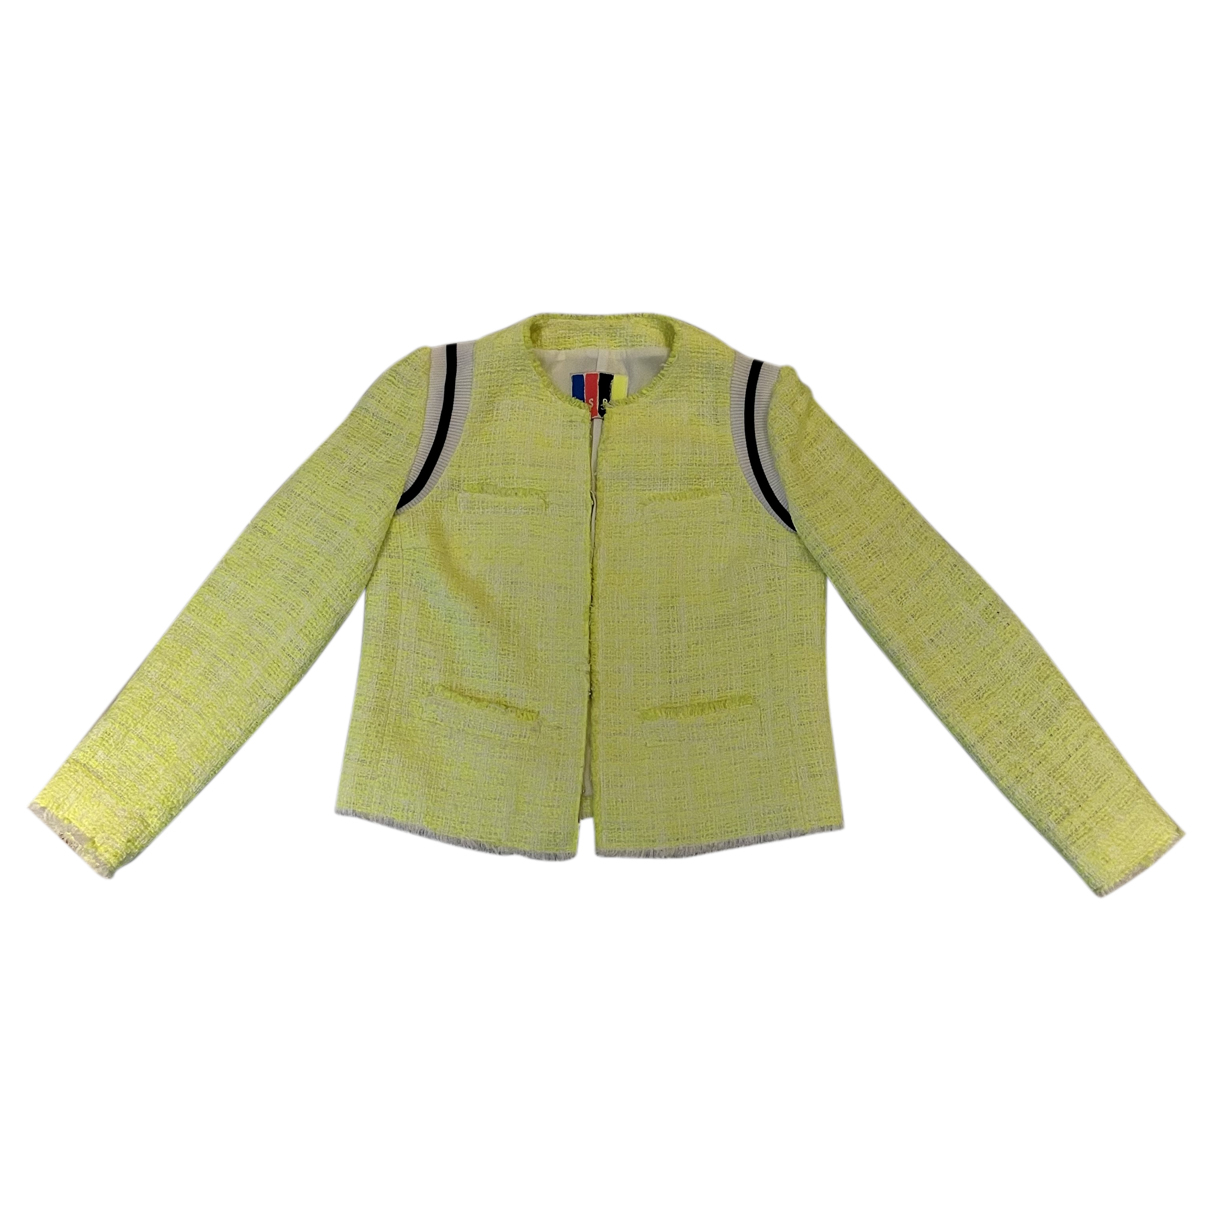 Msgm N Yellow Cotton jacket for Women 46 IT